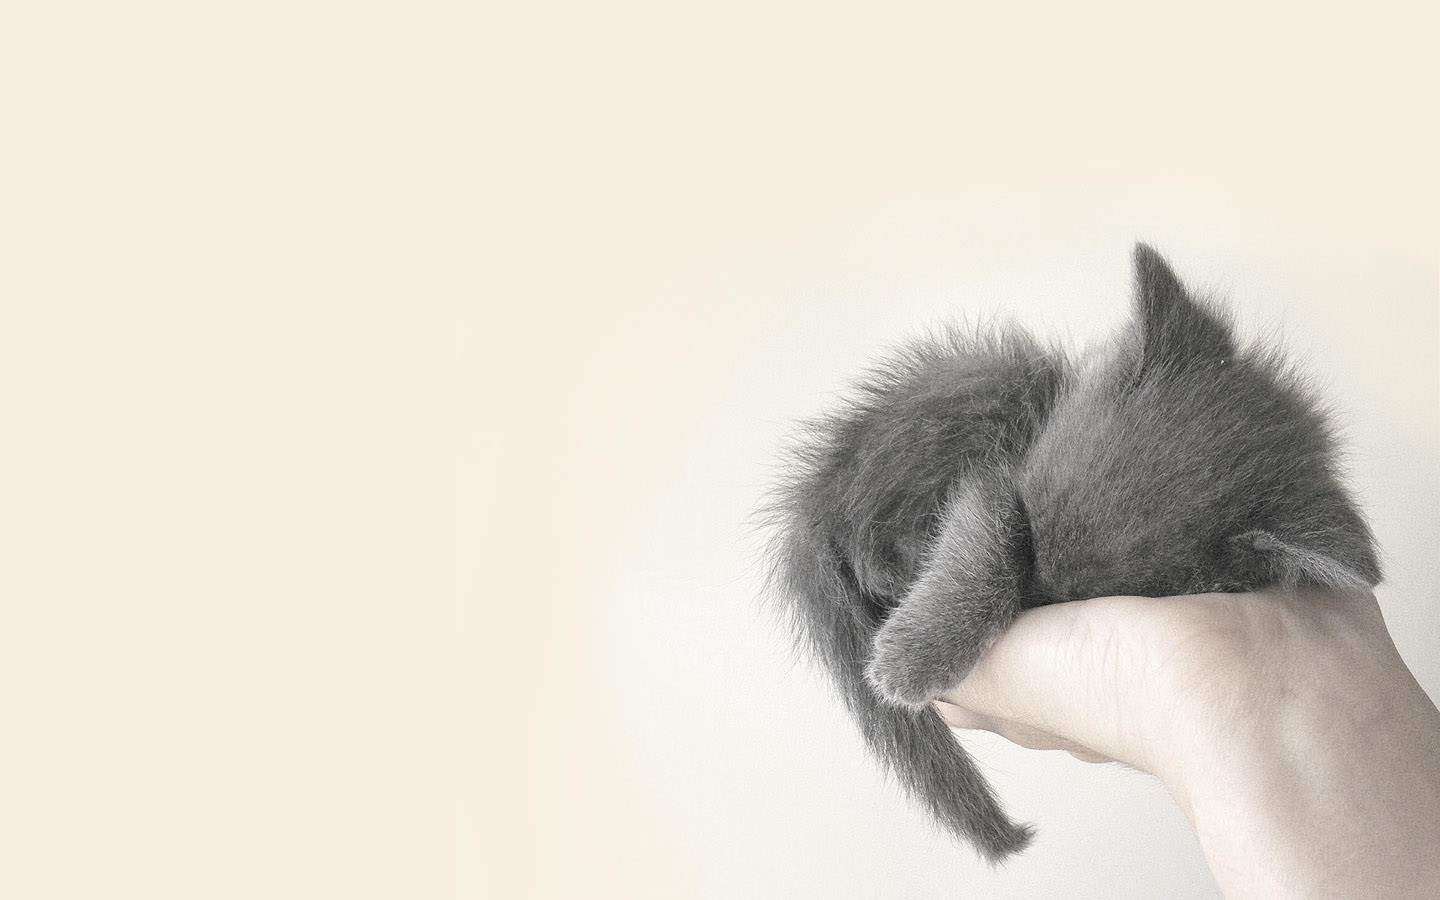 Cute Cat in Hand Beautiful Background